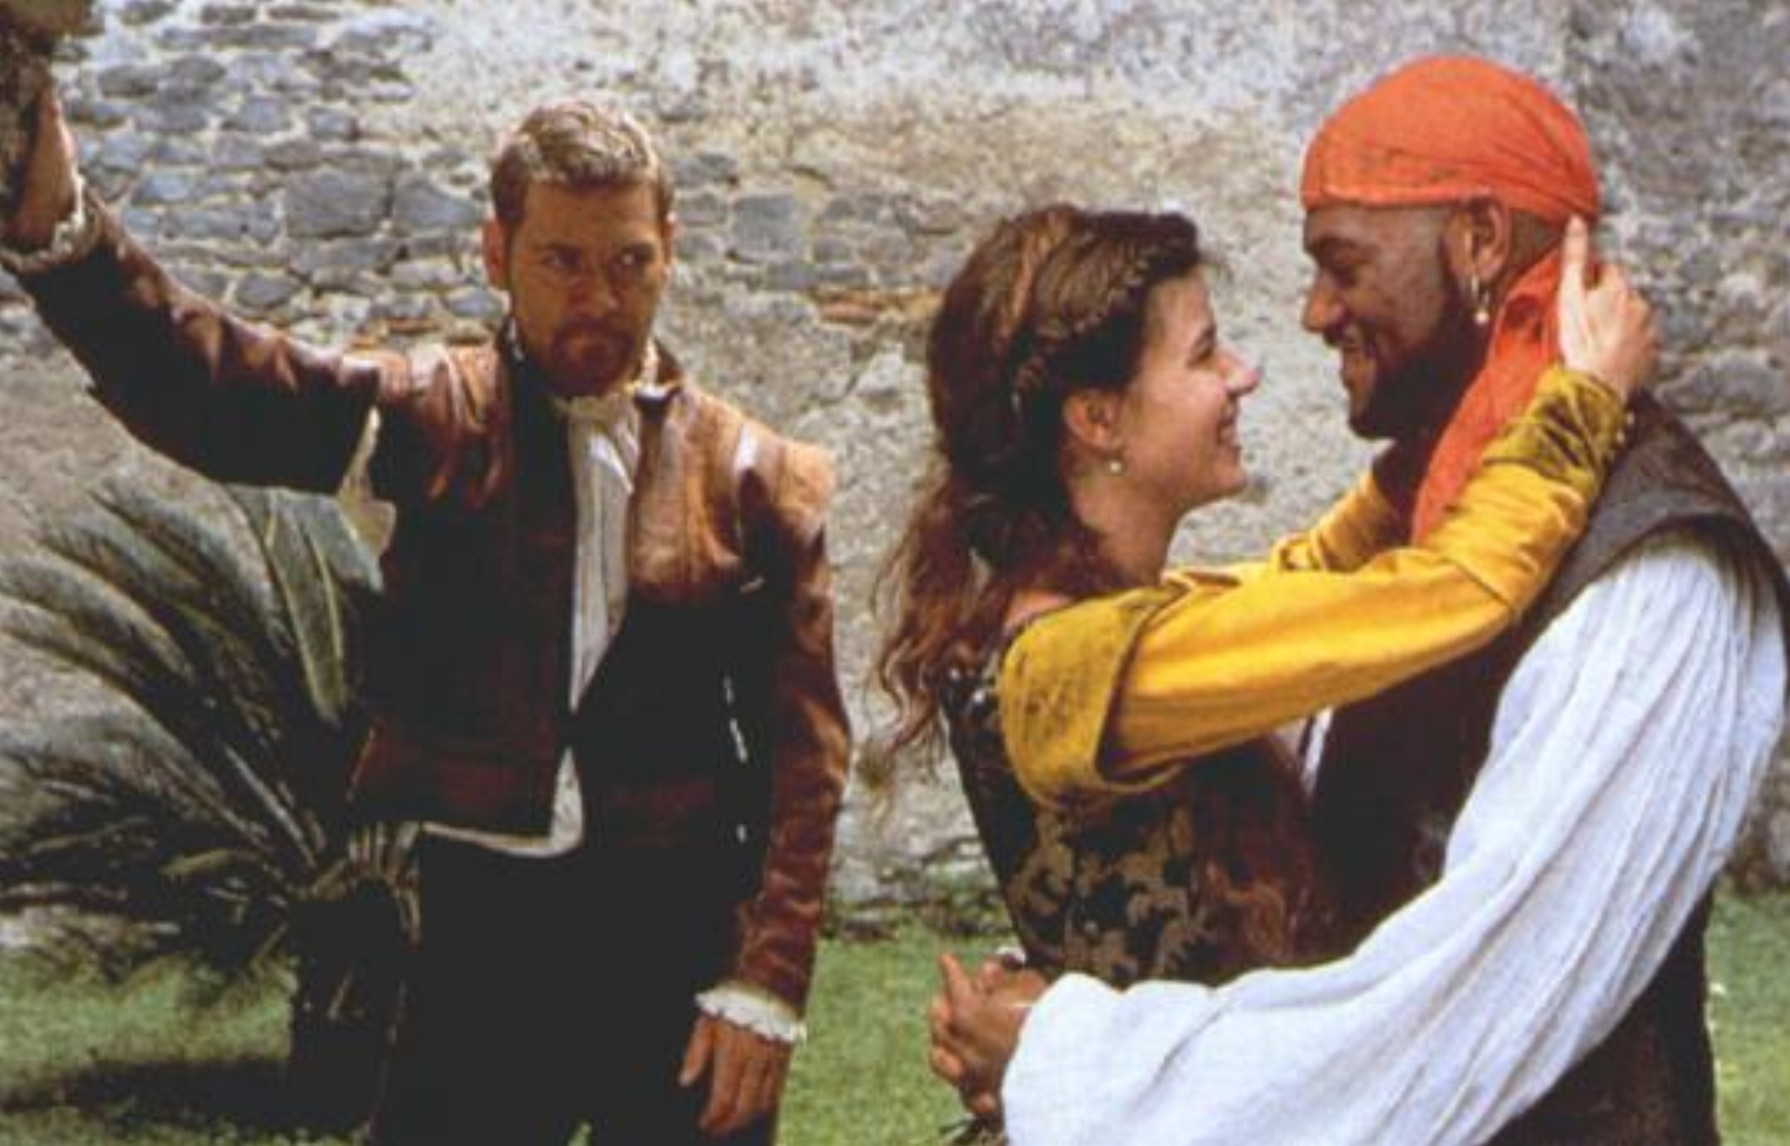 othellos relationship with iago Furthermore, how does iago characterize desdemona's and othello's relationship through his eyes, is their relationship one of love or lust and how would this point of view affect brabantio, a proud father of a much-cherished daughter.